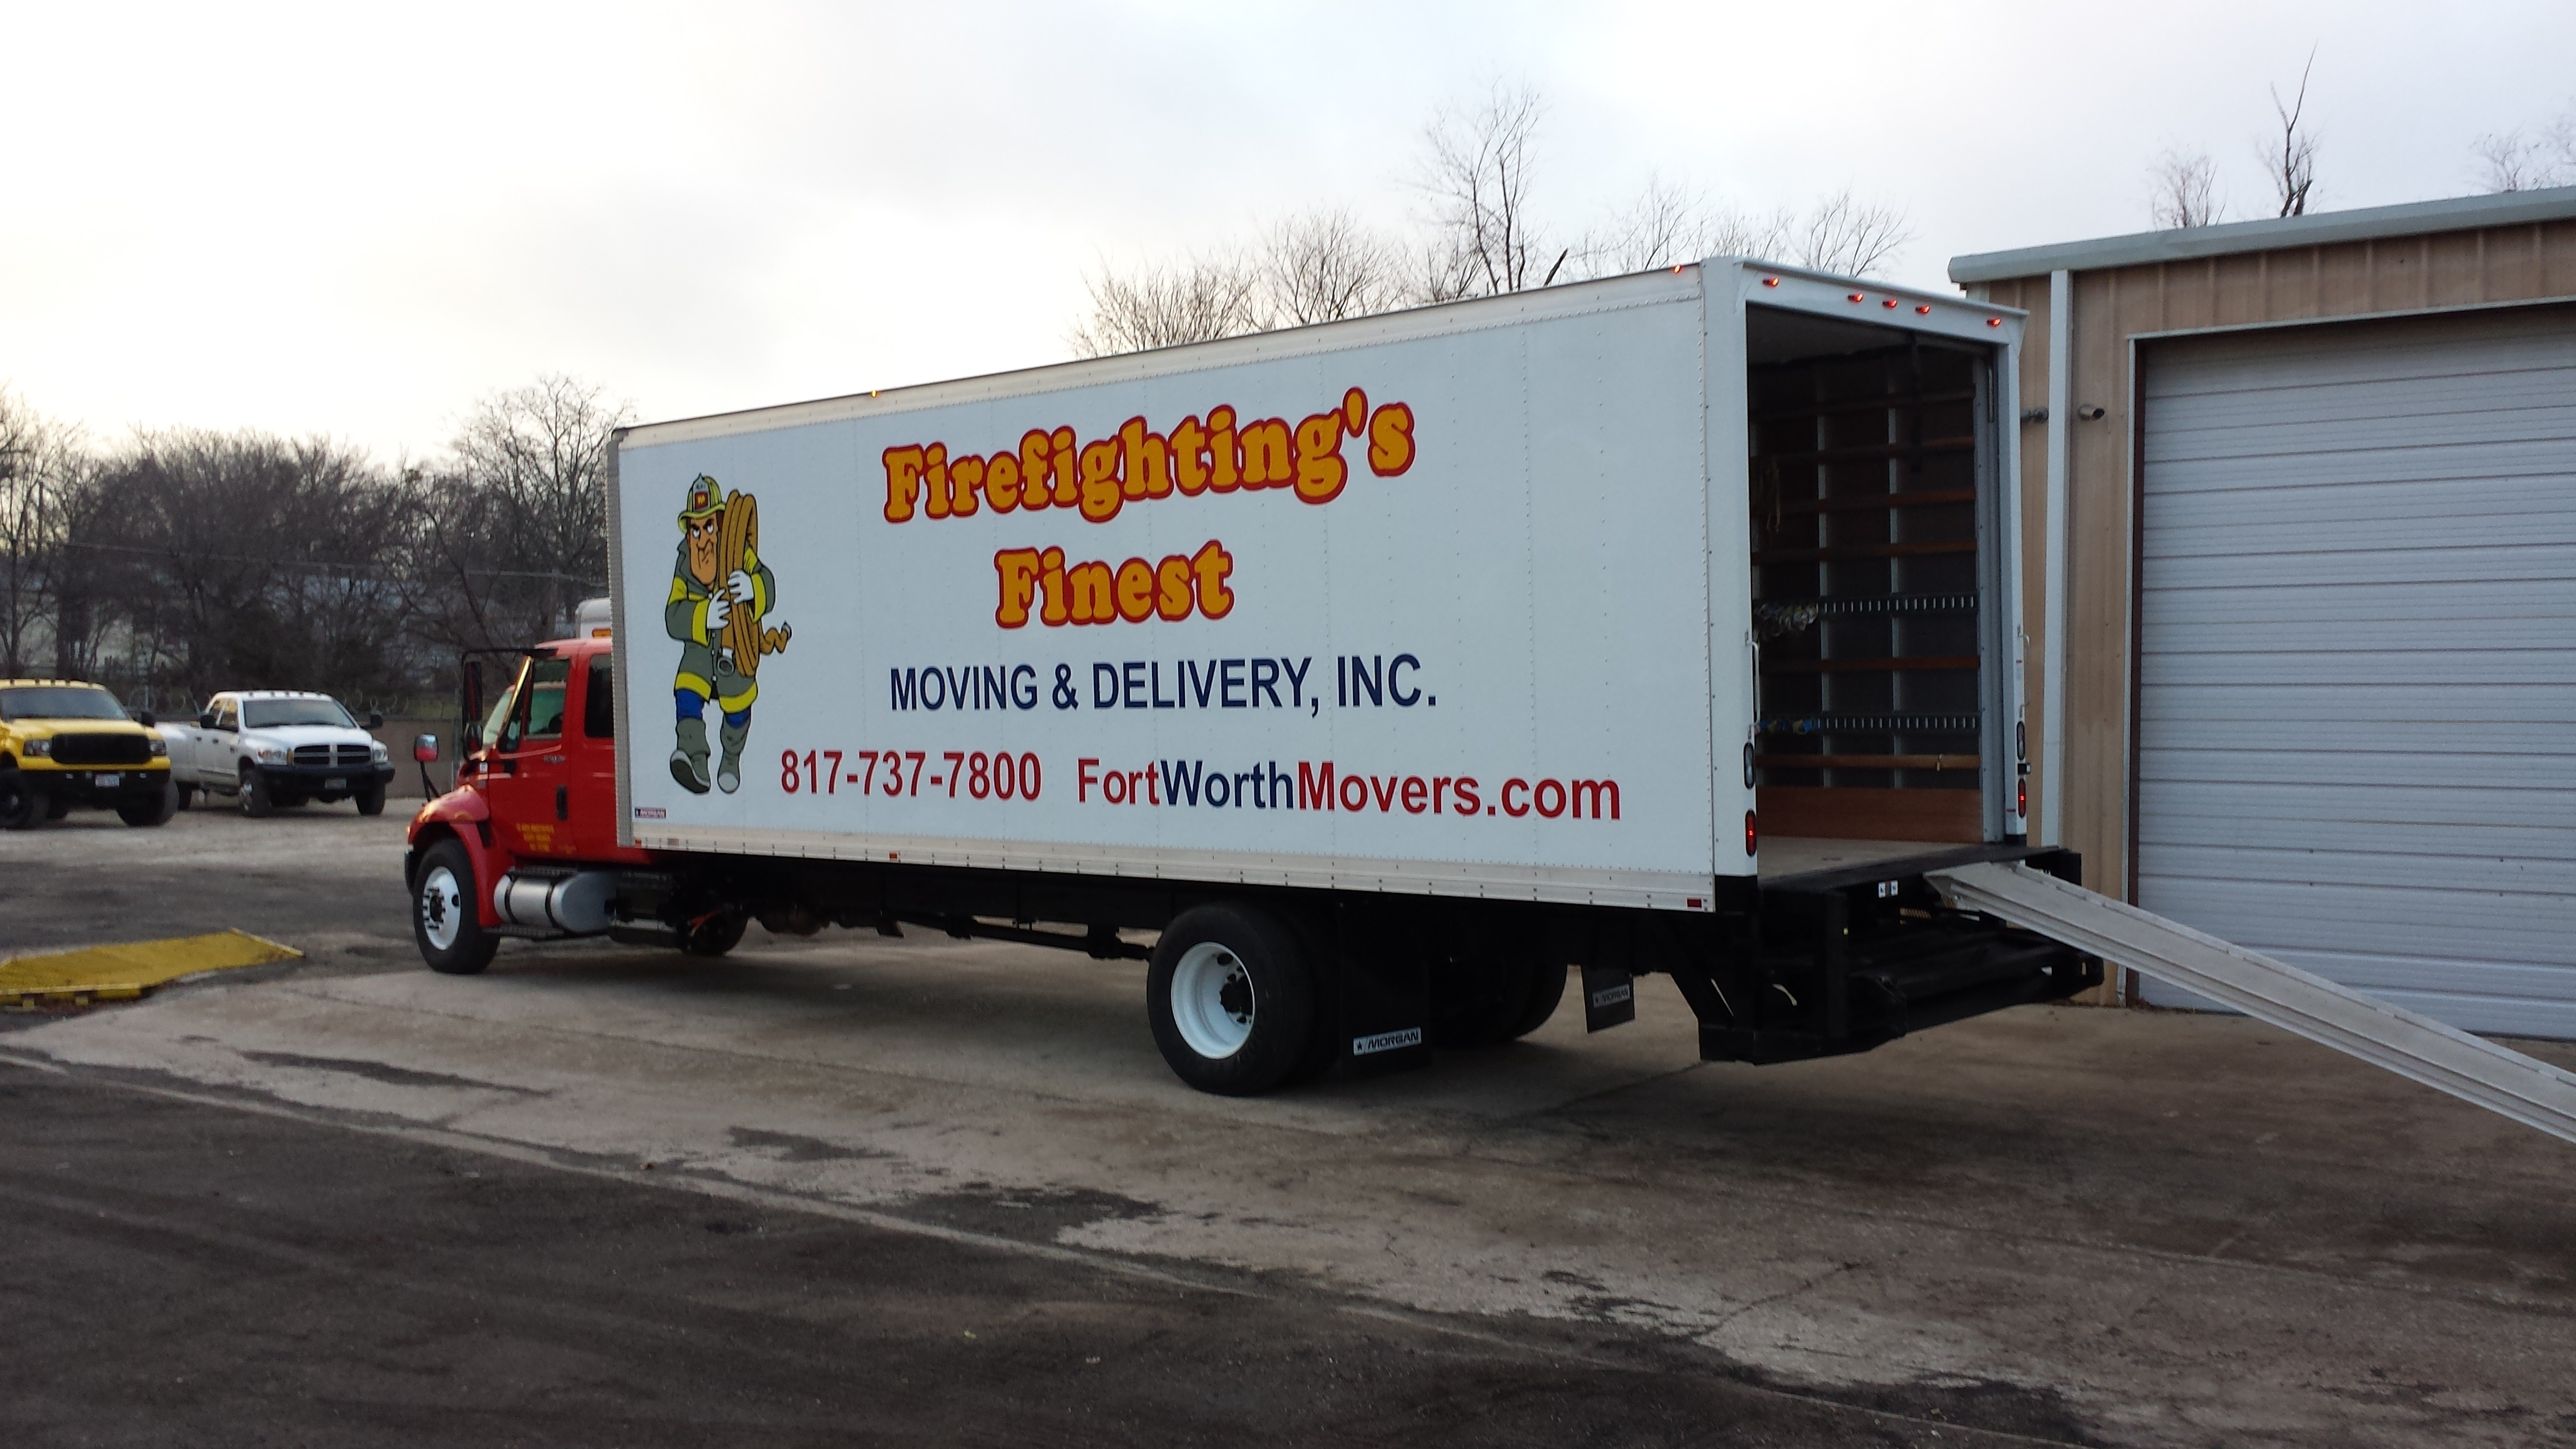 Firefightings Finest Moving Storage Inc